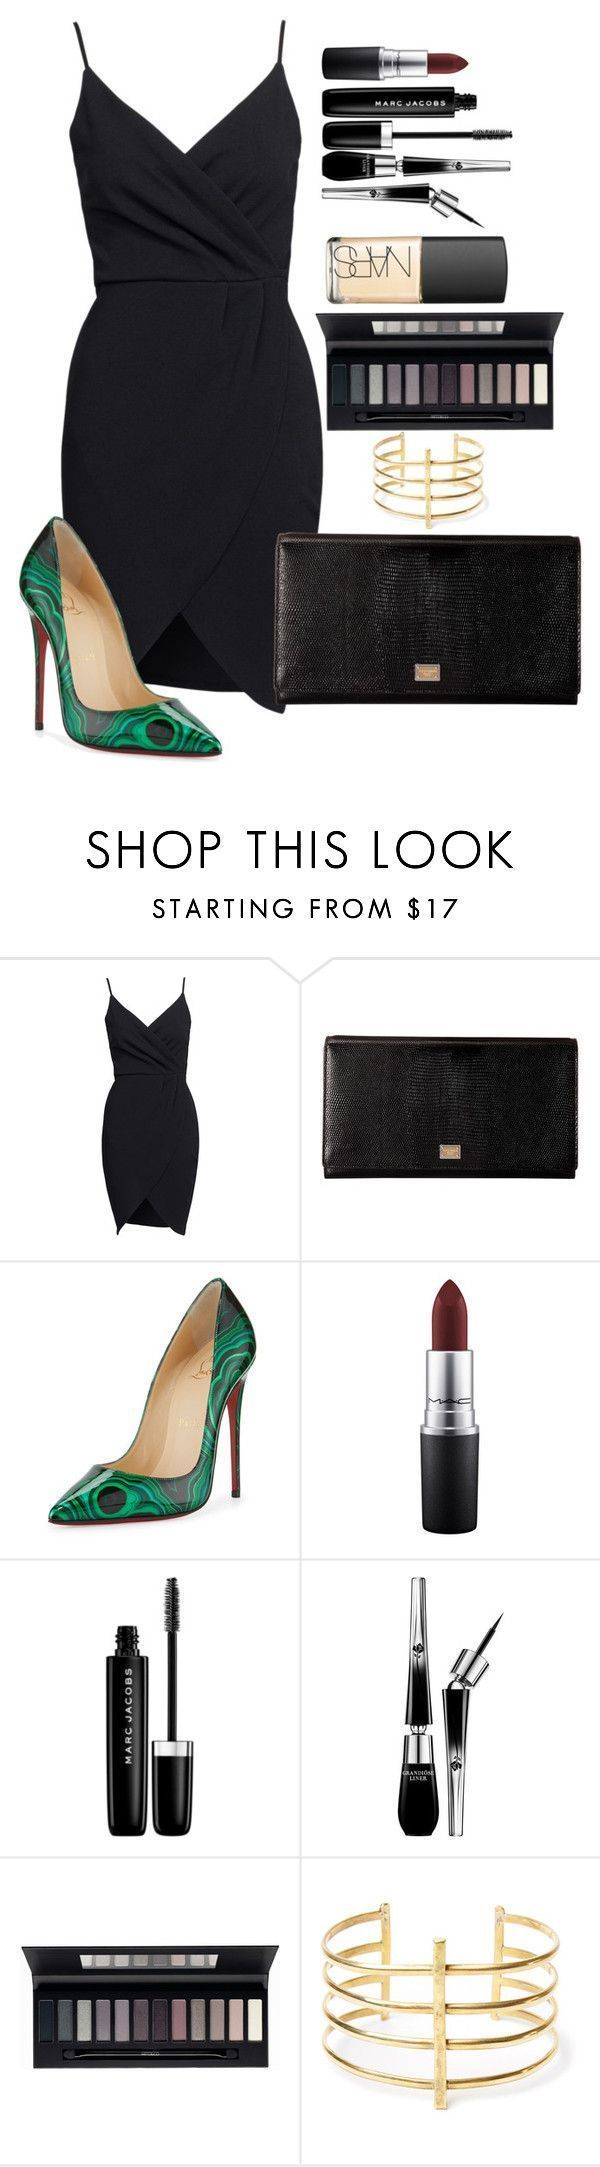 Untitled #1534 by fabianarveloc on Polyvore featuring Dolce&Gabbana, Christian Louboutin, MAC Cosmetics, Marc Jacobs, Lancôme, ArtDeco, BauXo and NARS Cosmetics